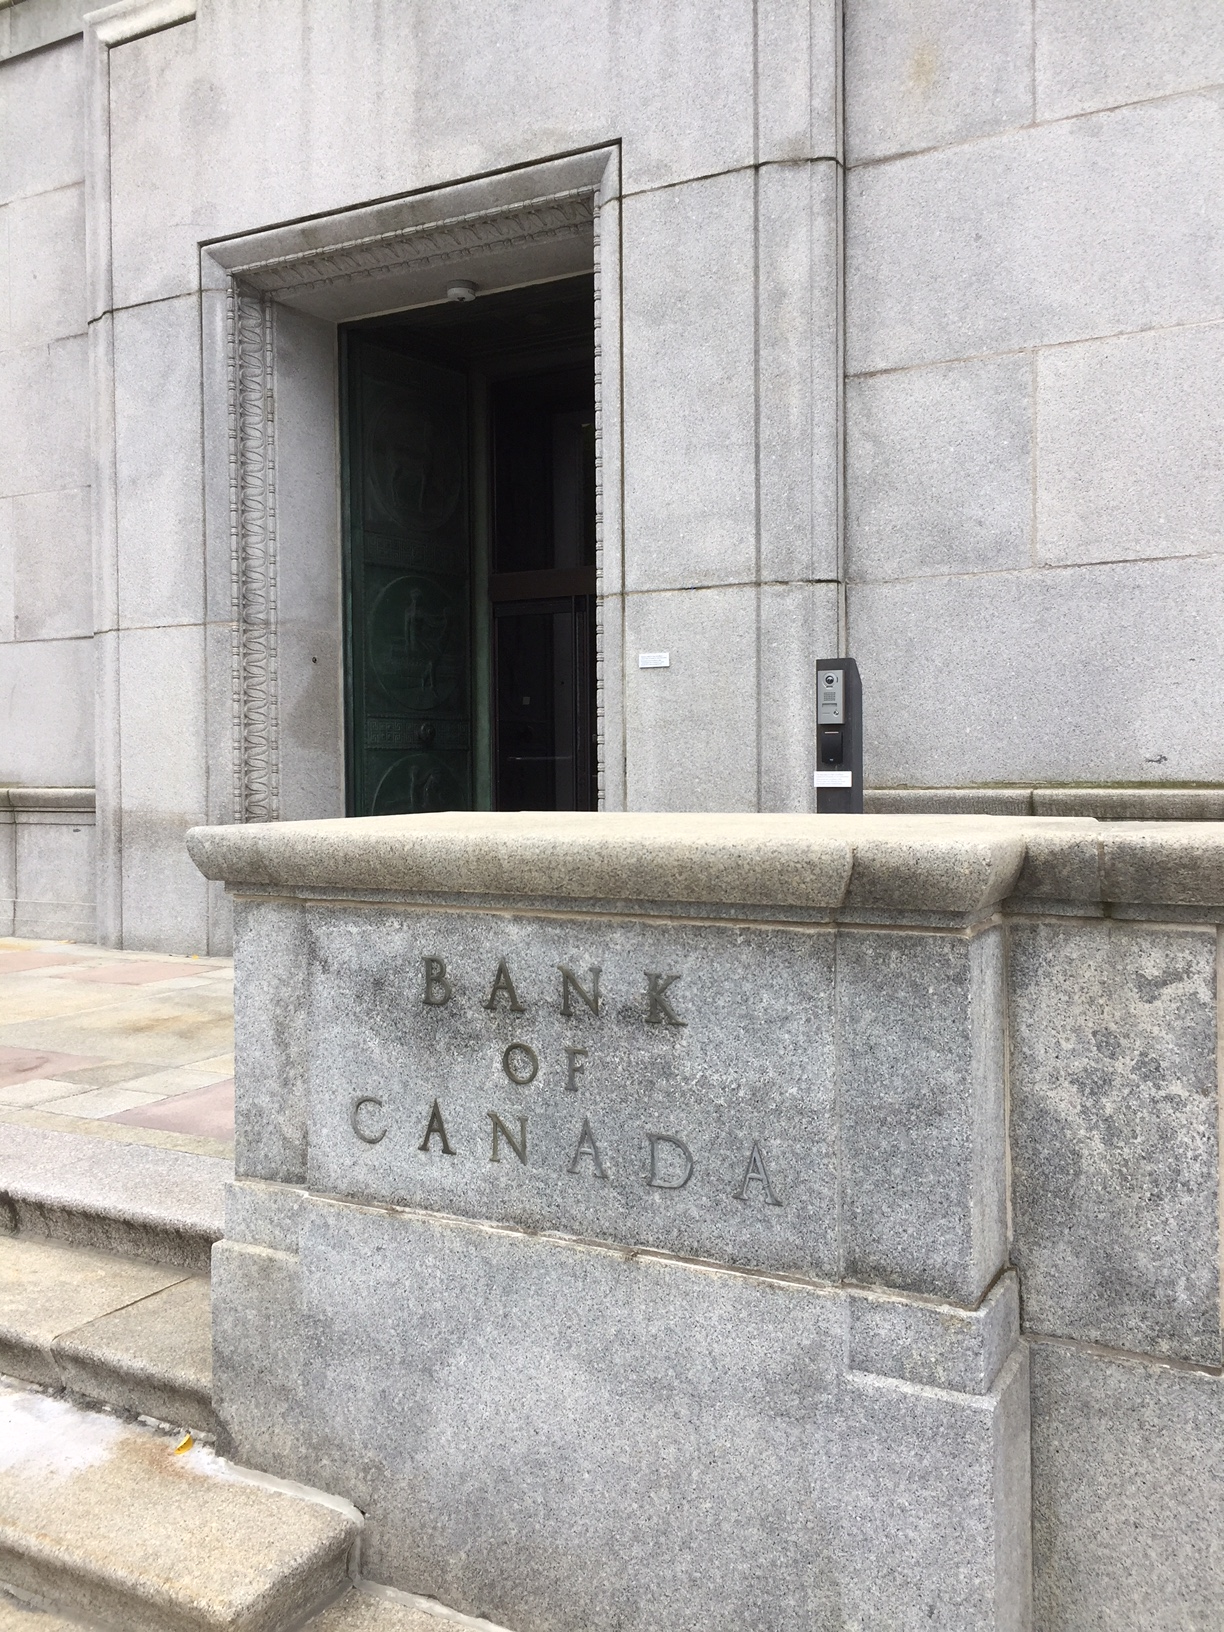 The Bank of Canada may cut rates